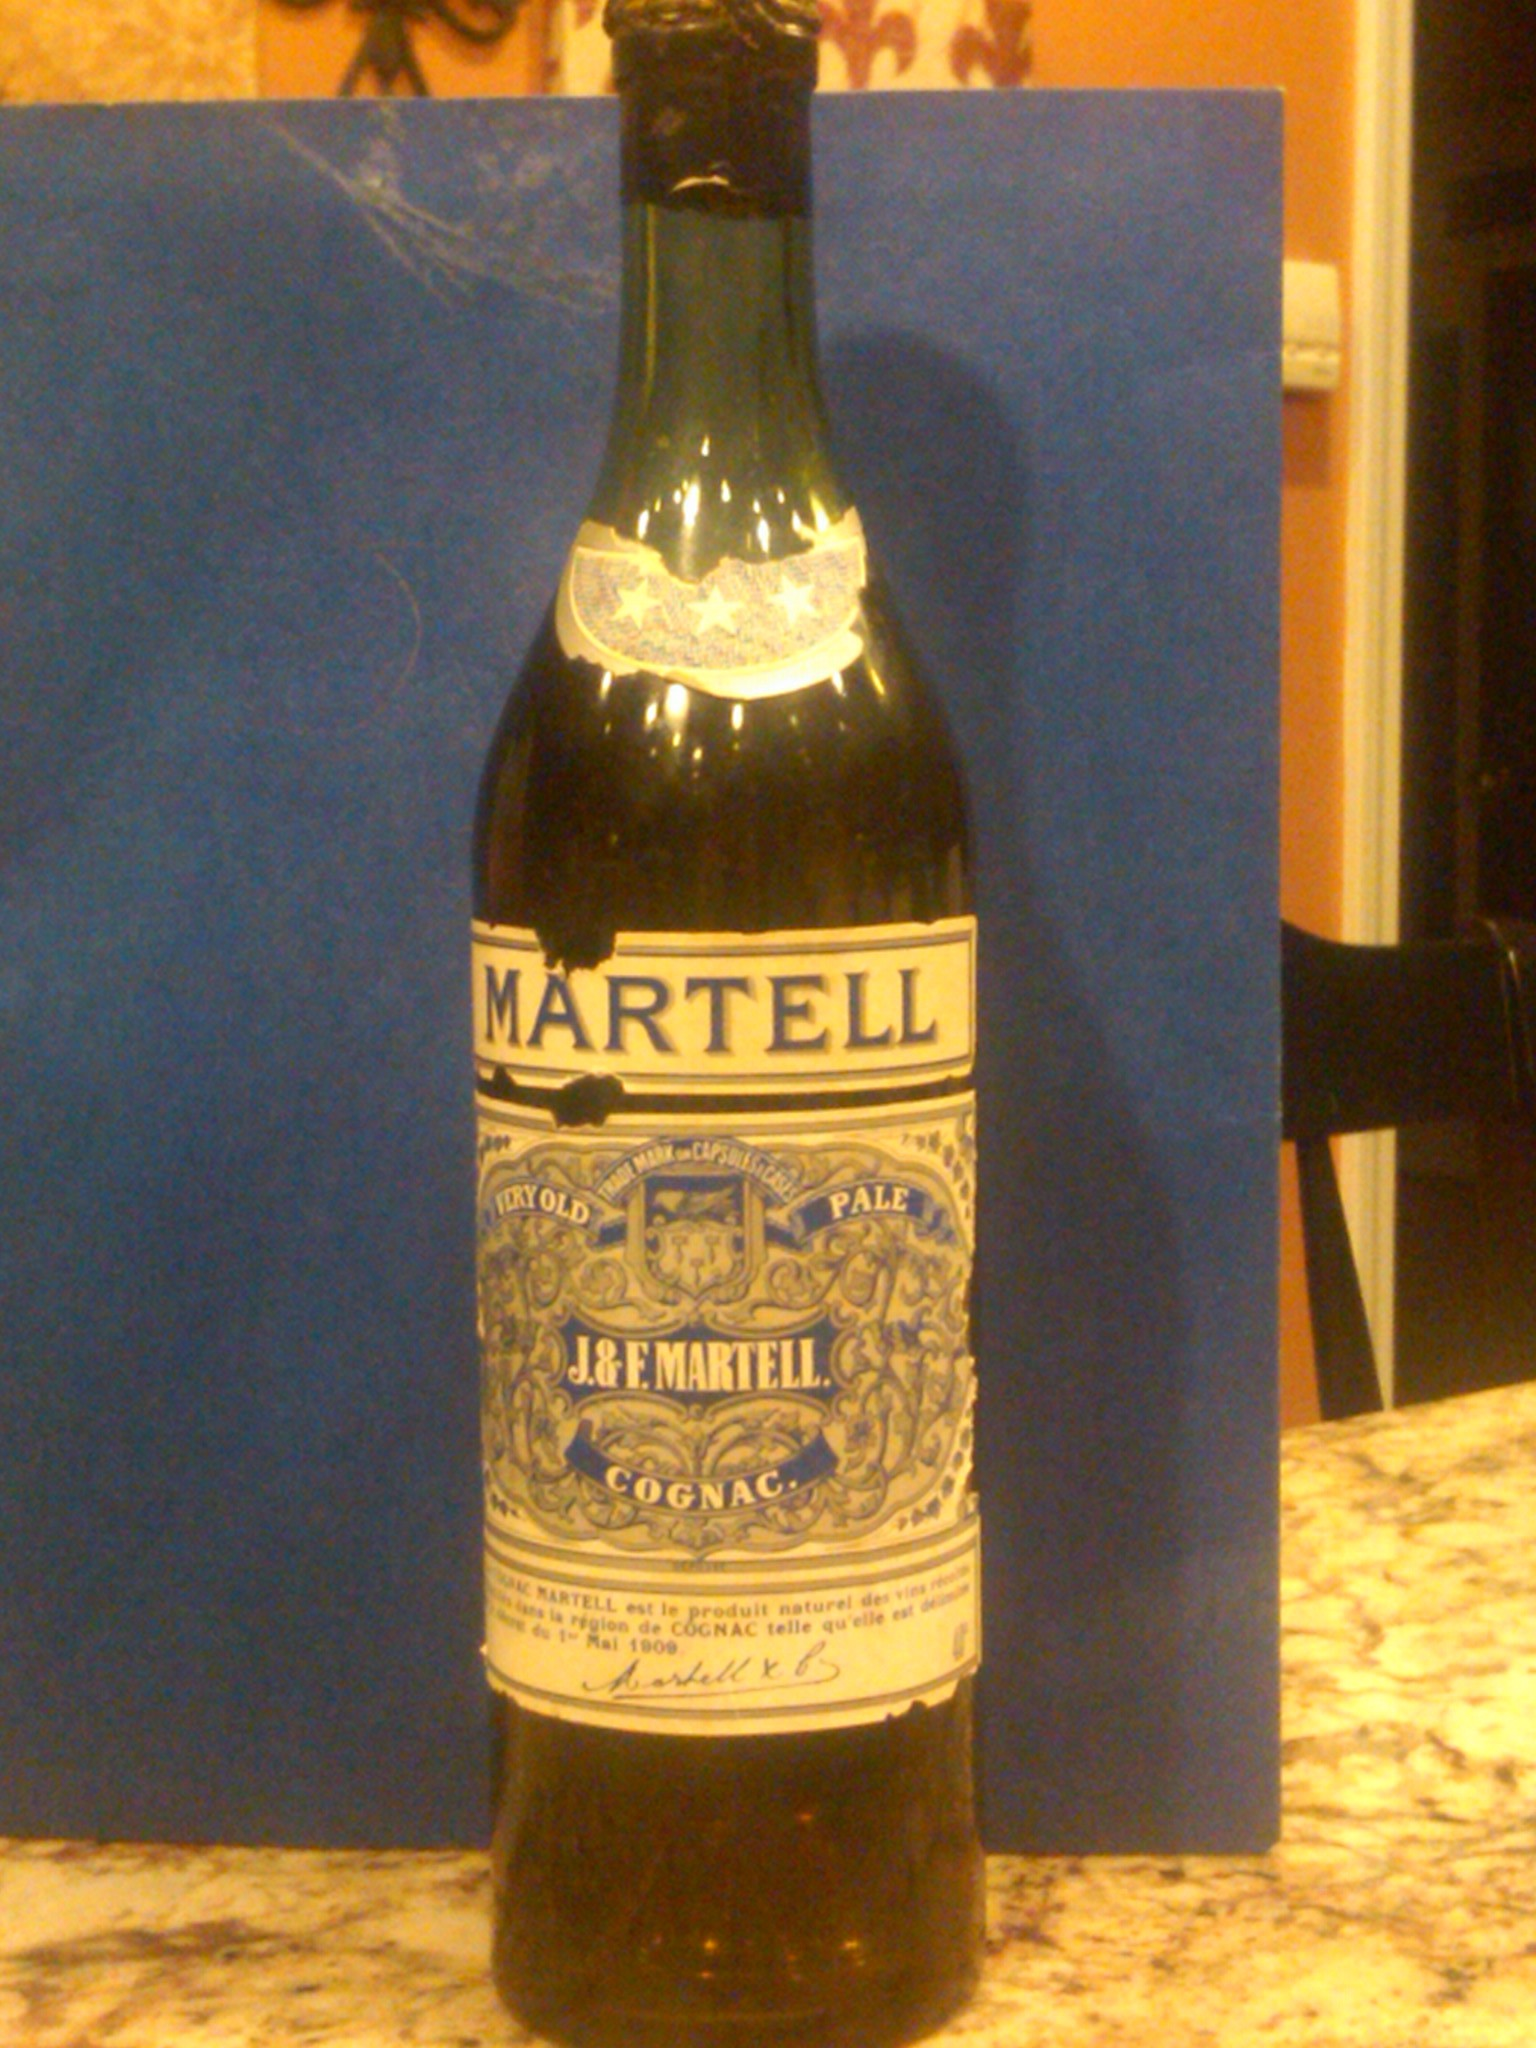 JF Martell Very Old Pale